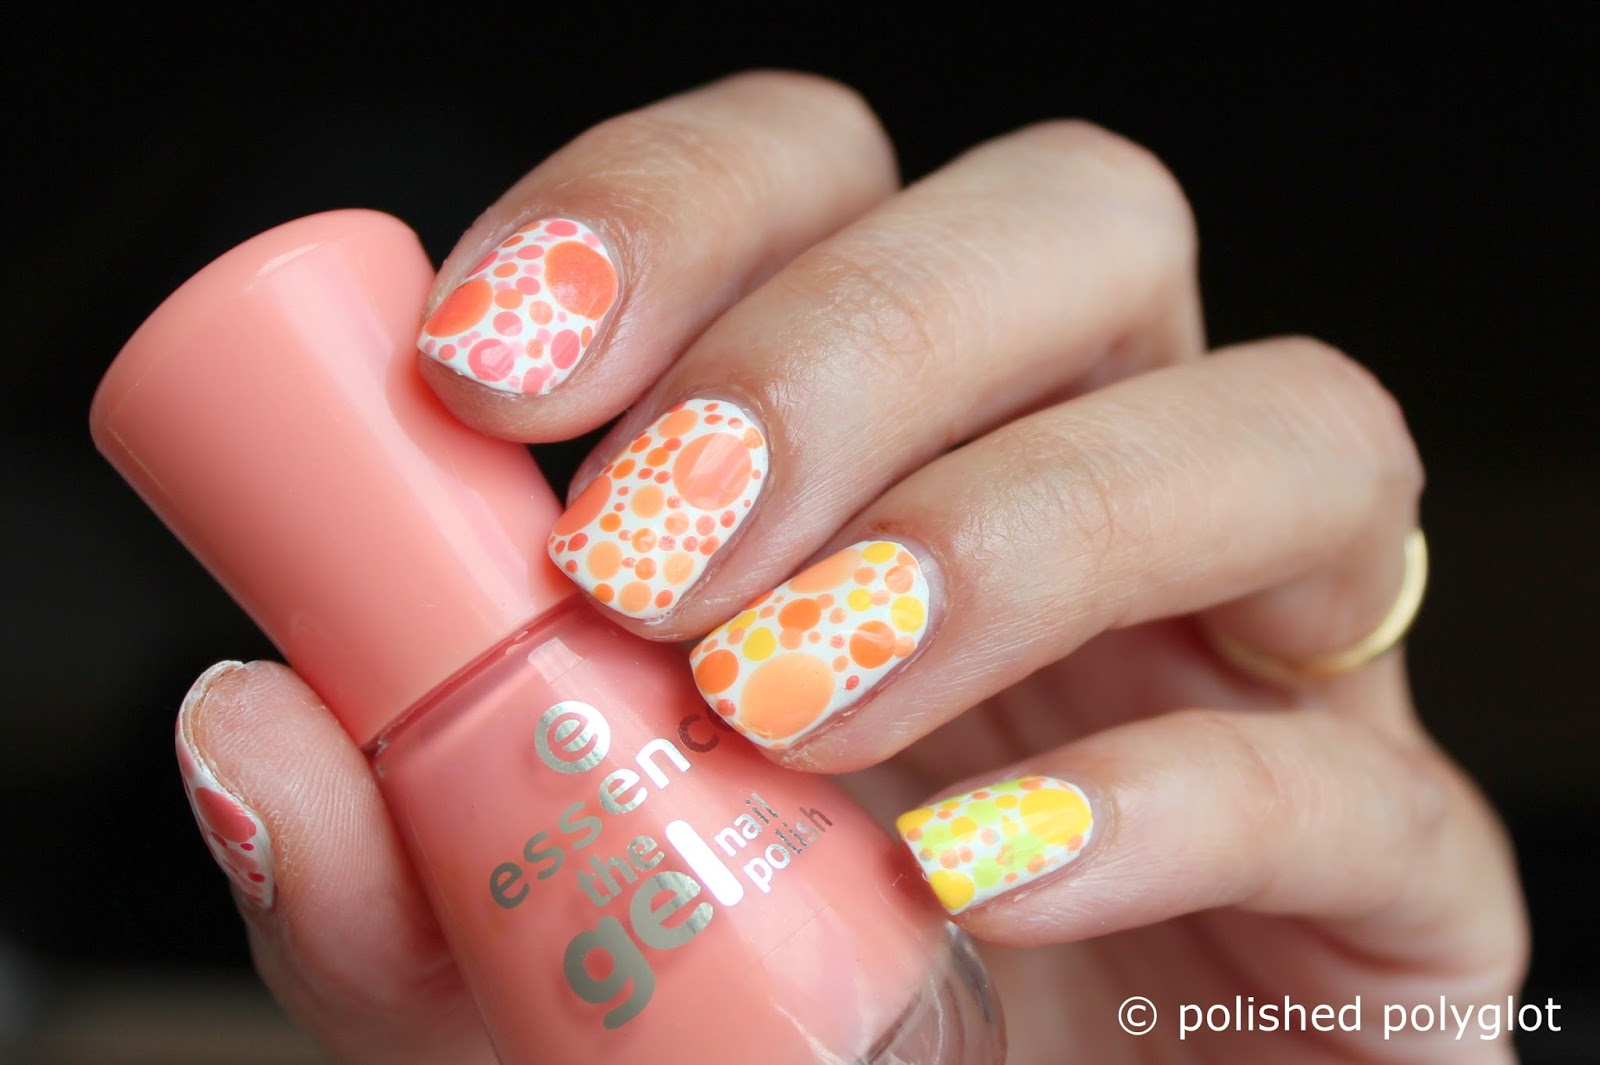 Nail art Designs for short nails: Peach or lemon skittles ...